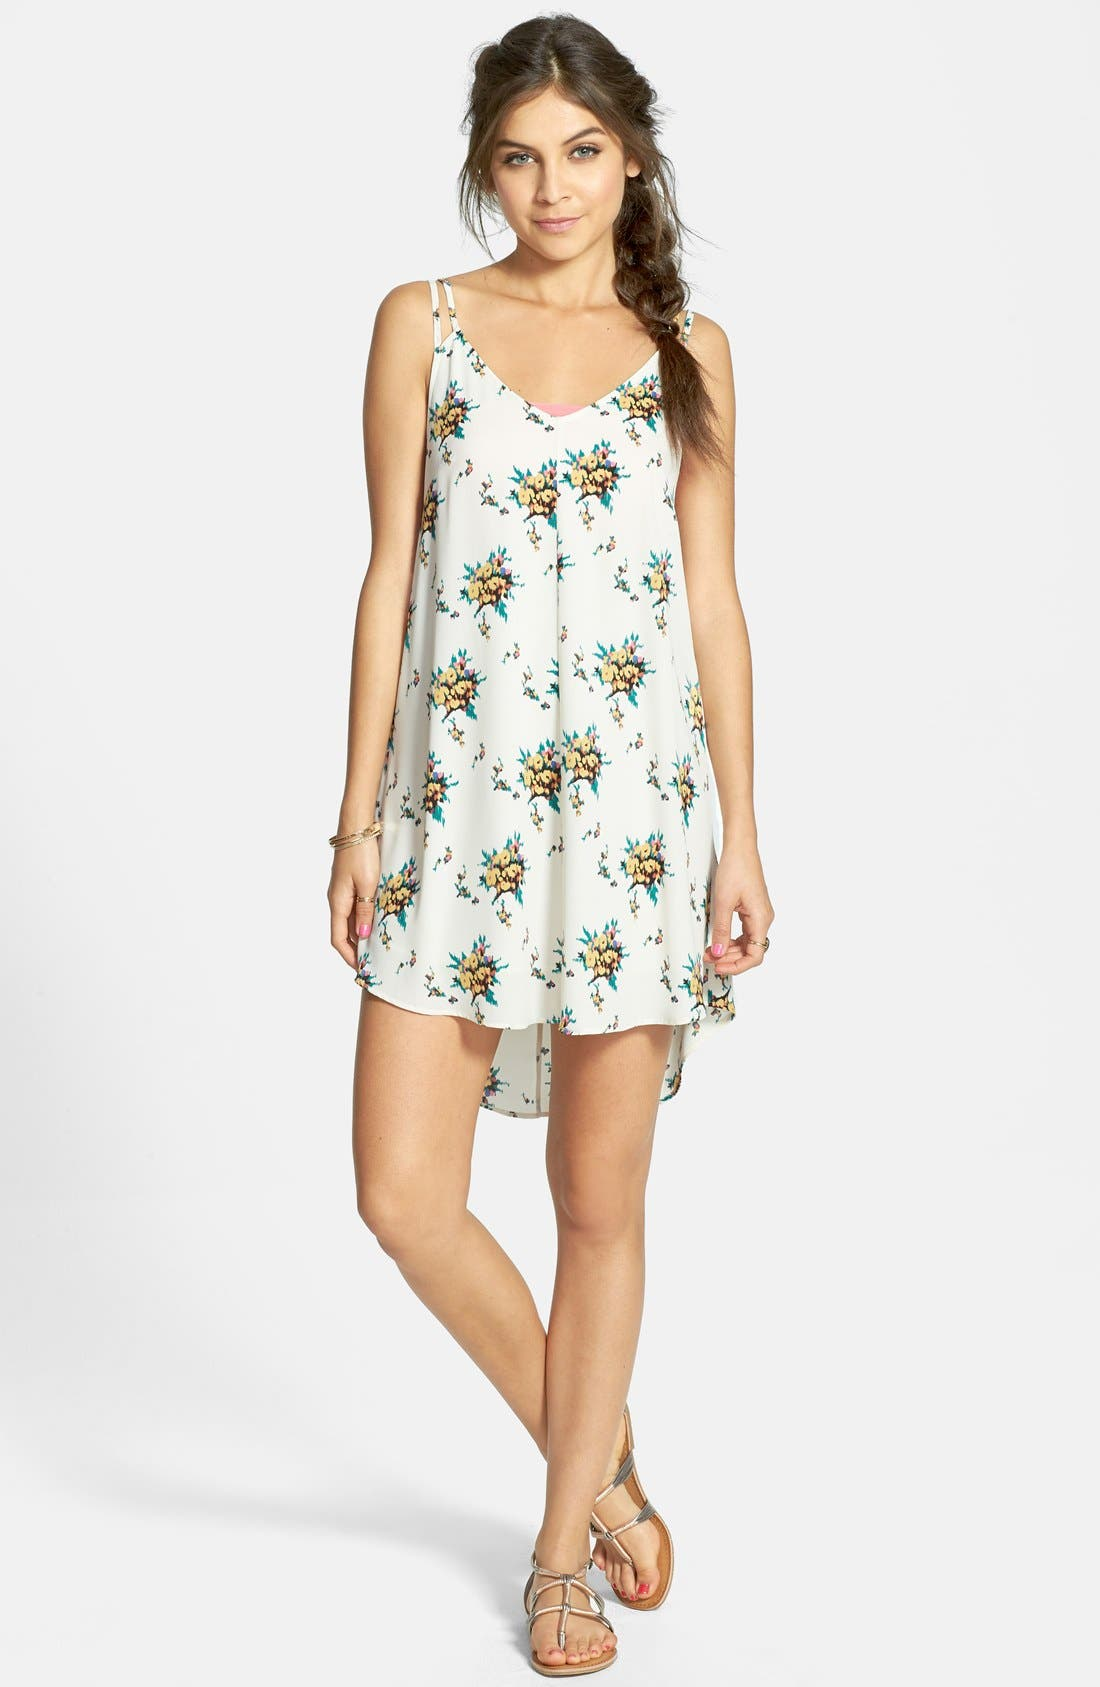 Alternate Image 1 Selected - Lush Floral Print High/Low Dress (Juniors)